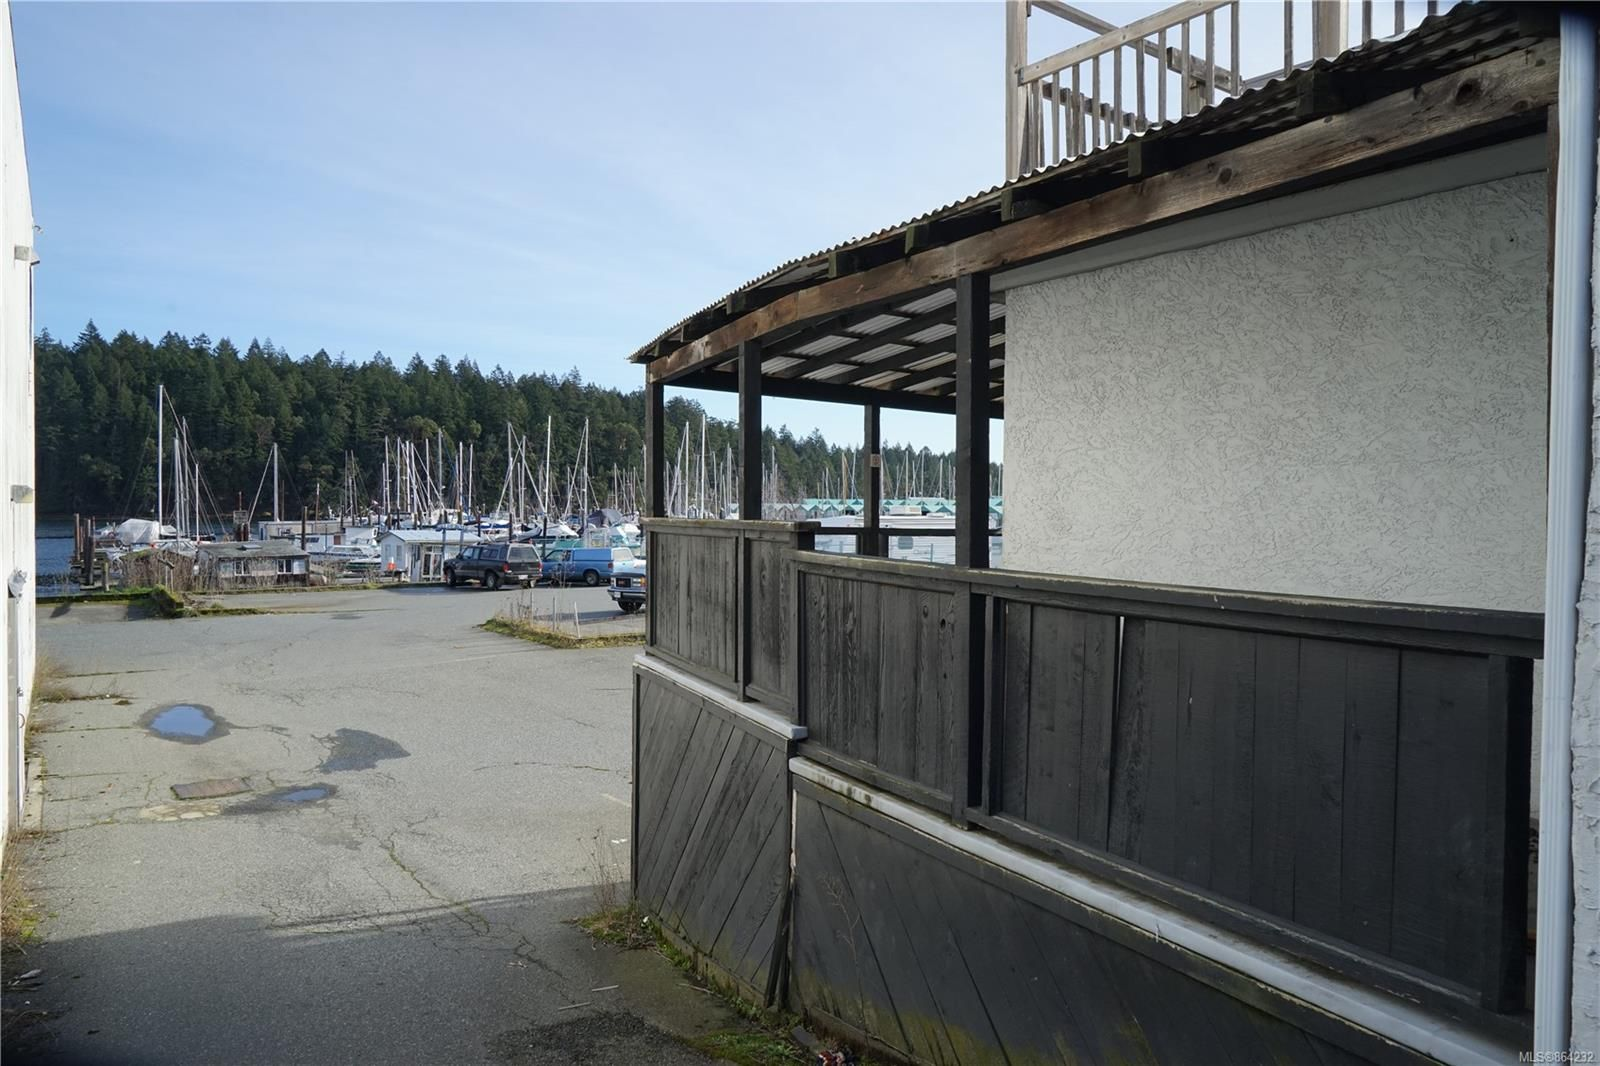 Photo 7: Photos: 1340-1370 Stewart Ave in : Na Brechin Hill Mixed Use for sale (Nanaimo)  : MLS®# 864232